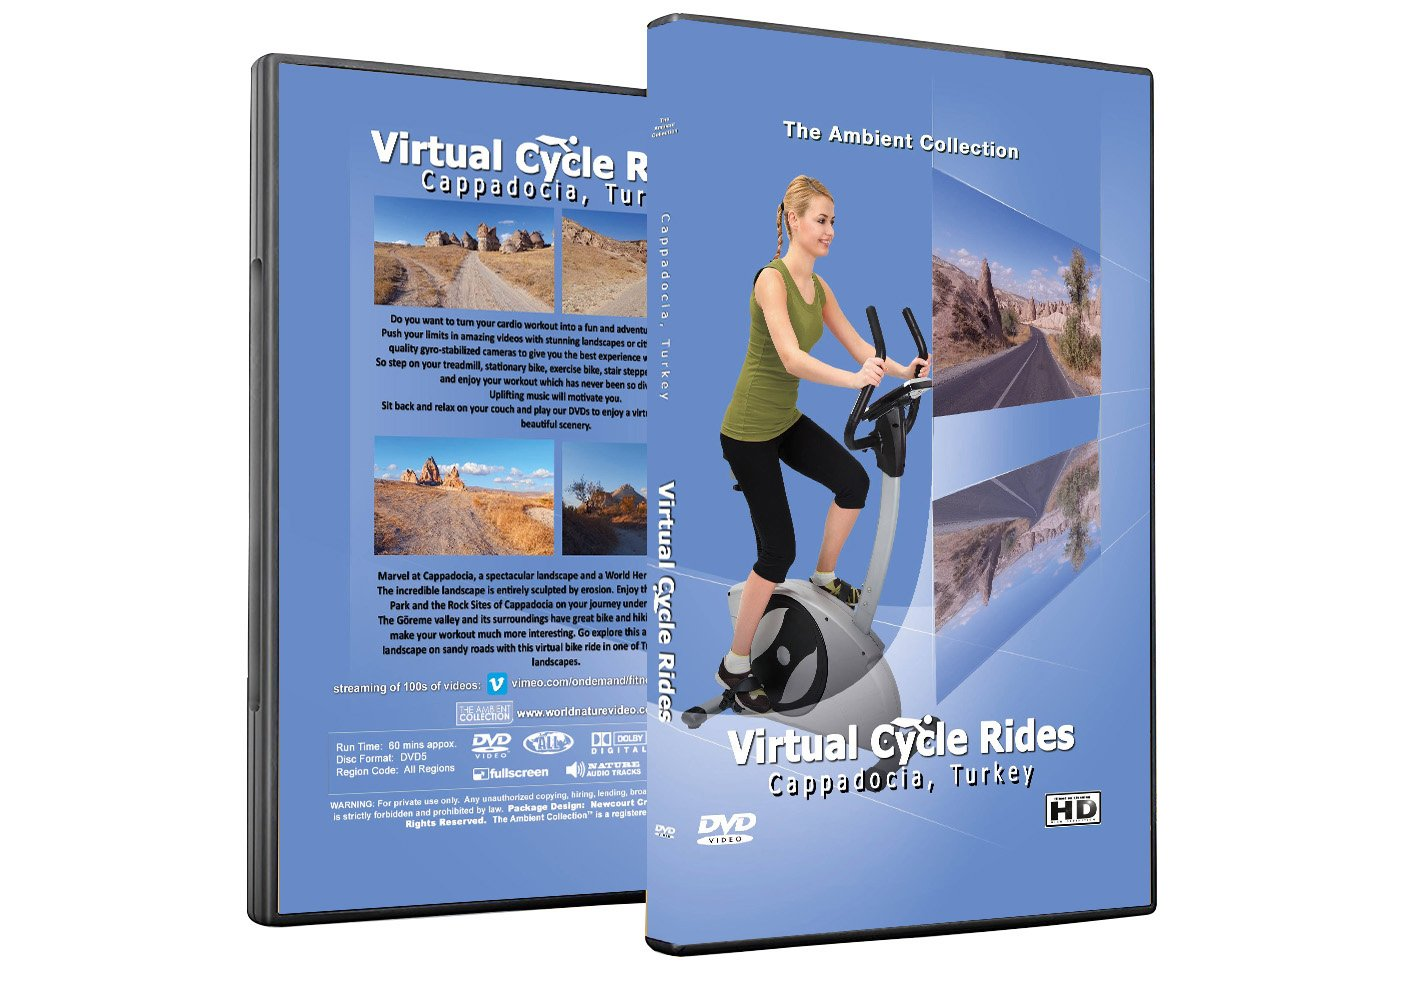 Virtual Cycle Rides DVD - Cappadocia, Turkey - for Indoor Cycling, Treadmill and Running Workouts